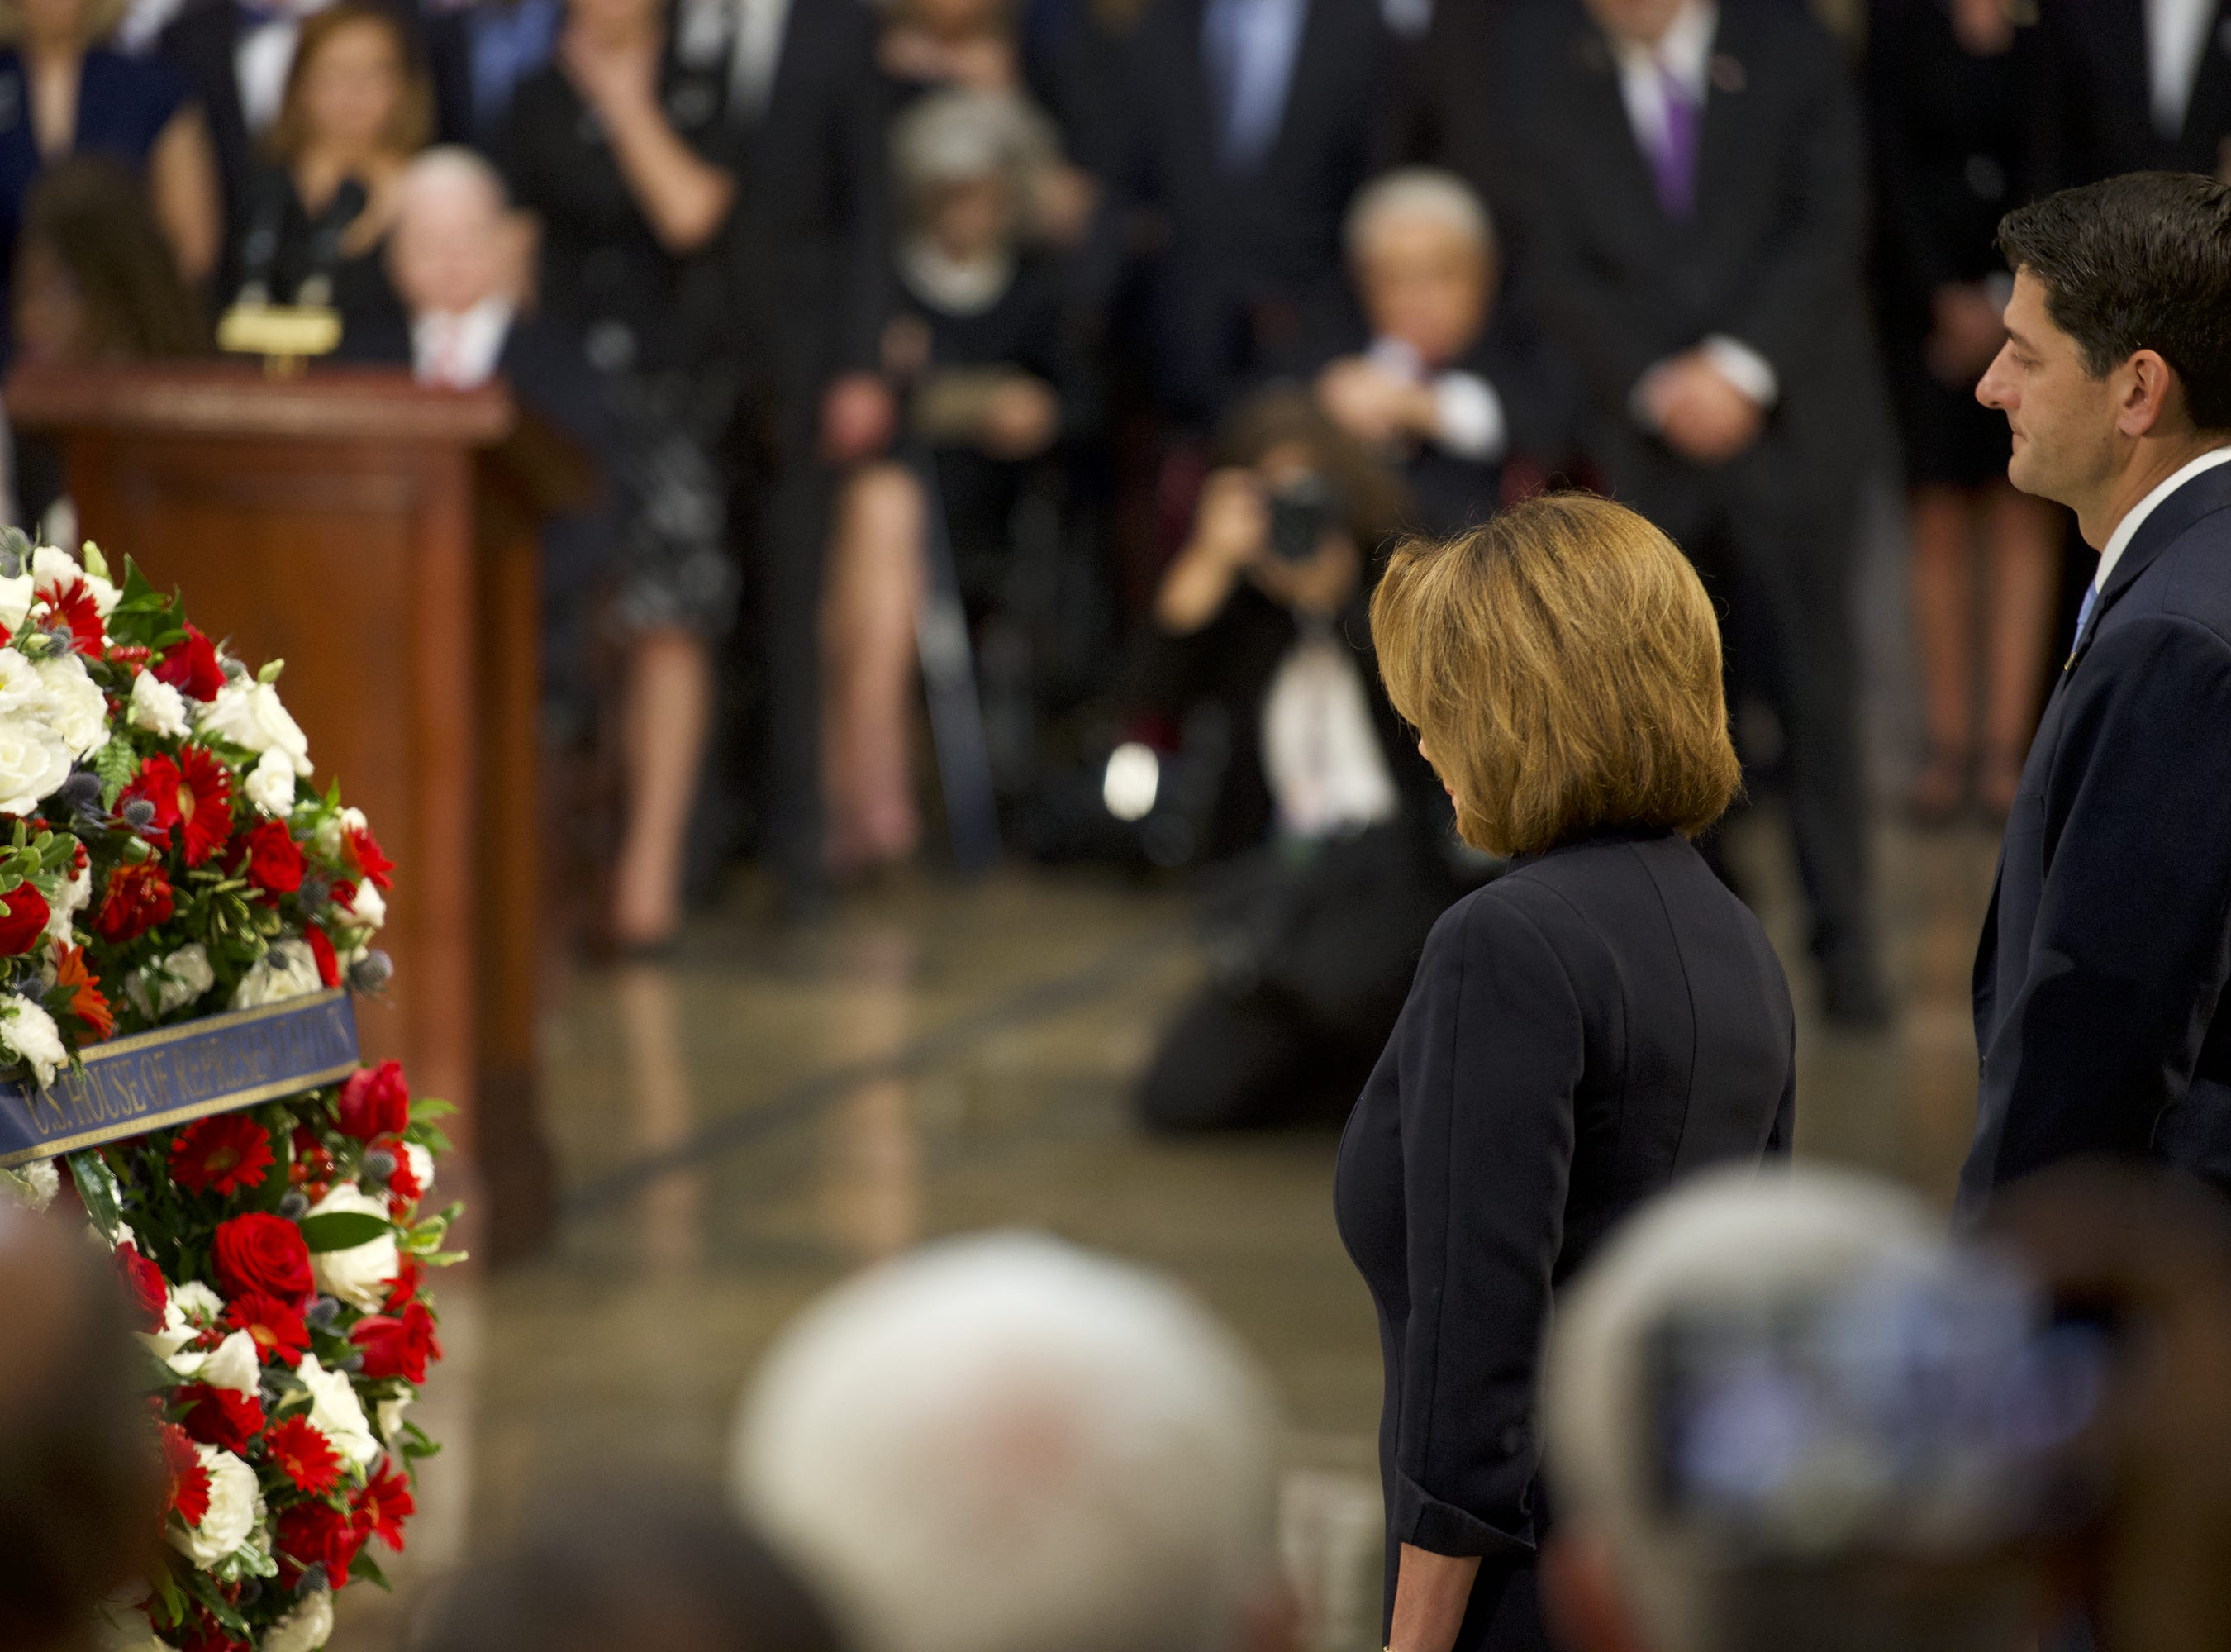 8/31/18 11:19:10 AM -- Washington, DC, U.S.A  -- House leaders Nancy Pelosi and Paul Ryan present a wreath as the body of John McCain lies in state at the U.S. Capitol in Washington on Aug. 31, 2018 in Washington. Sen. McCain died on Aug. 25. --    Photo by Jasper Colt, USA TODAY Staff